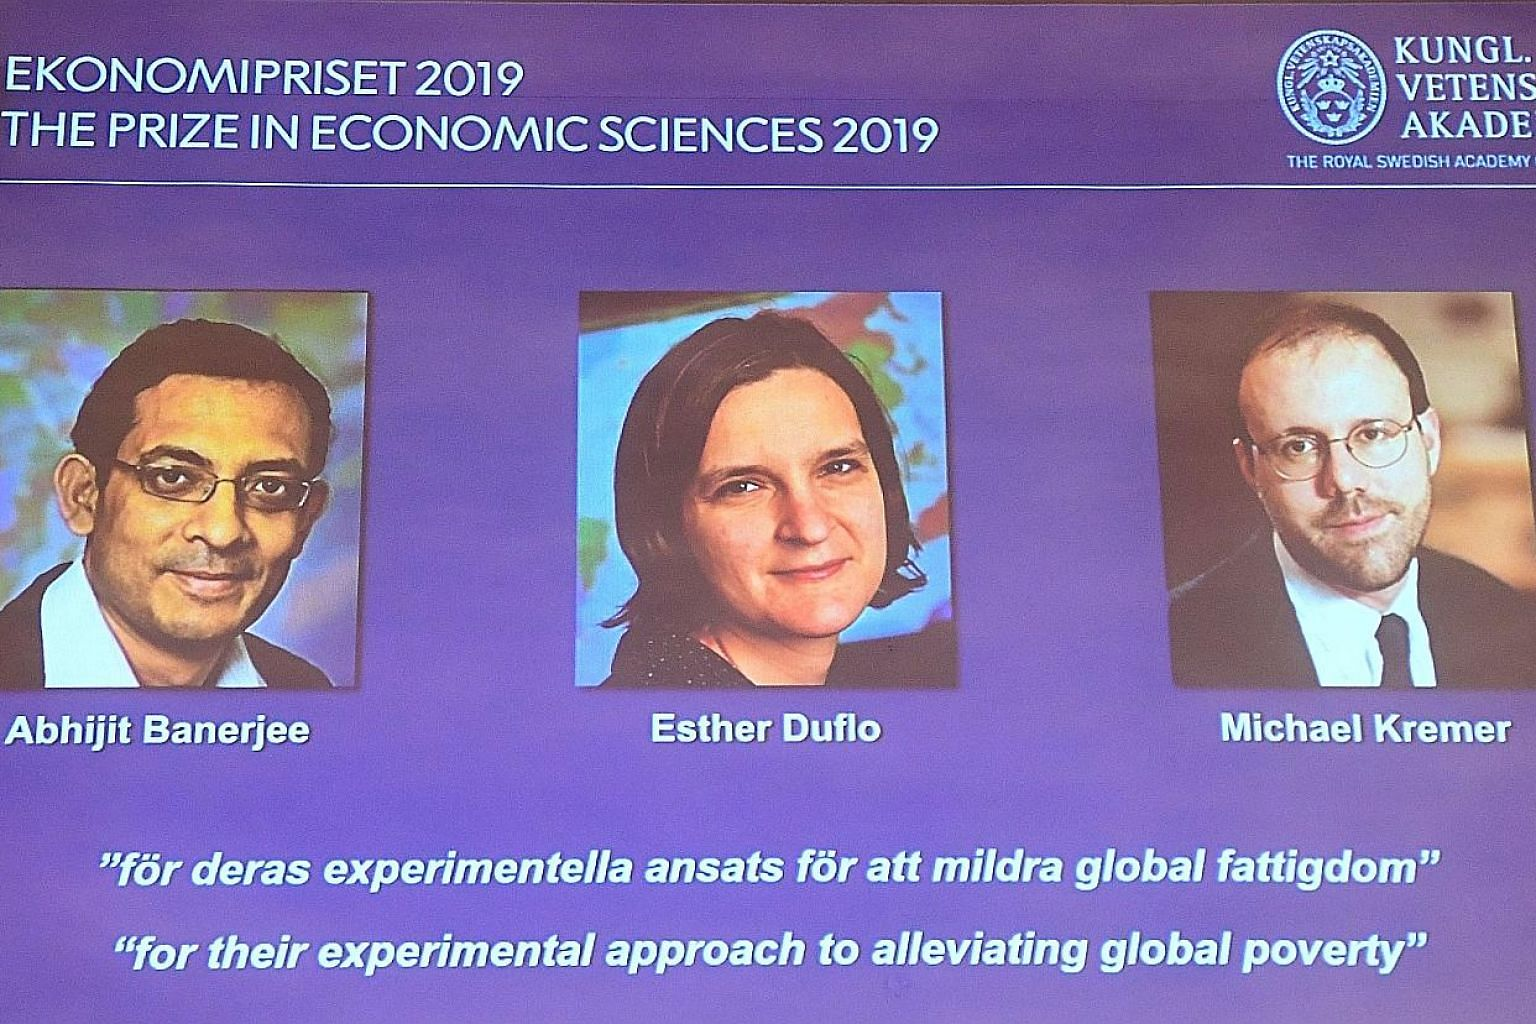 From top: The husband and wife team of Abhijit Banerjee and Esther Duflo from the Massachusetts Institute of Technology, share the Nobel Prize for Economics with Professor Michael Kremer of Harvard University.